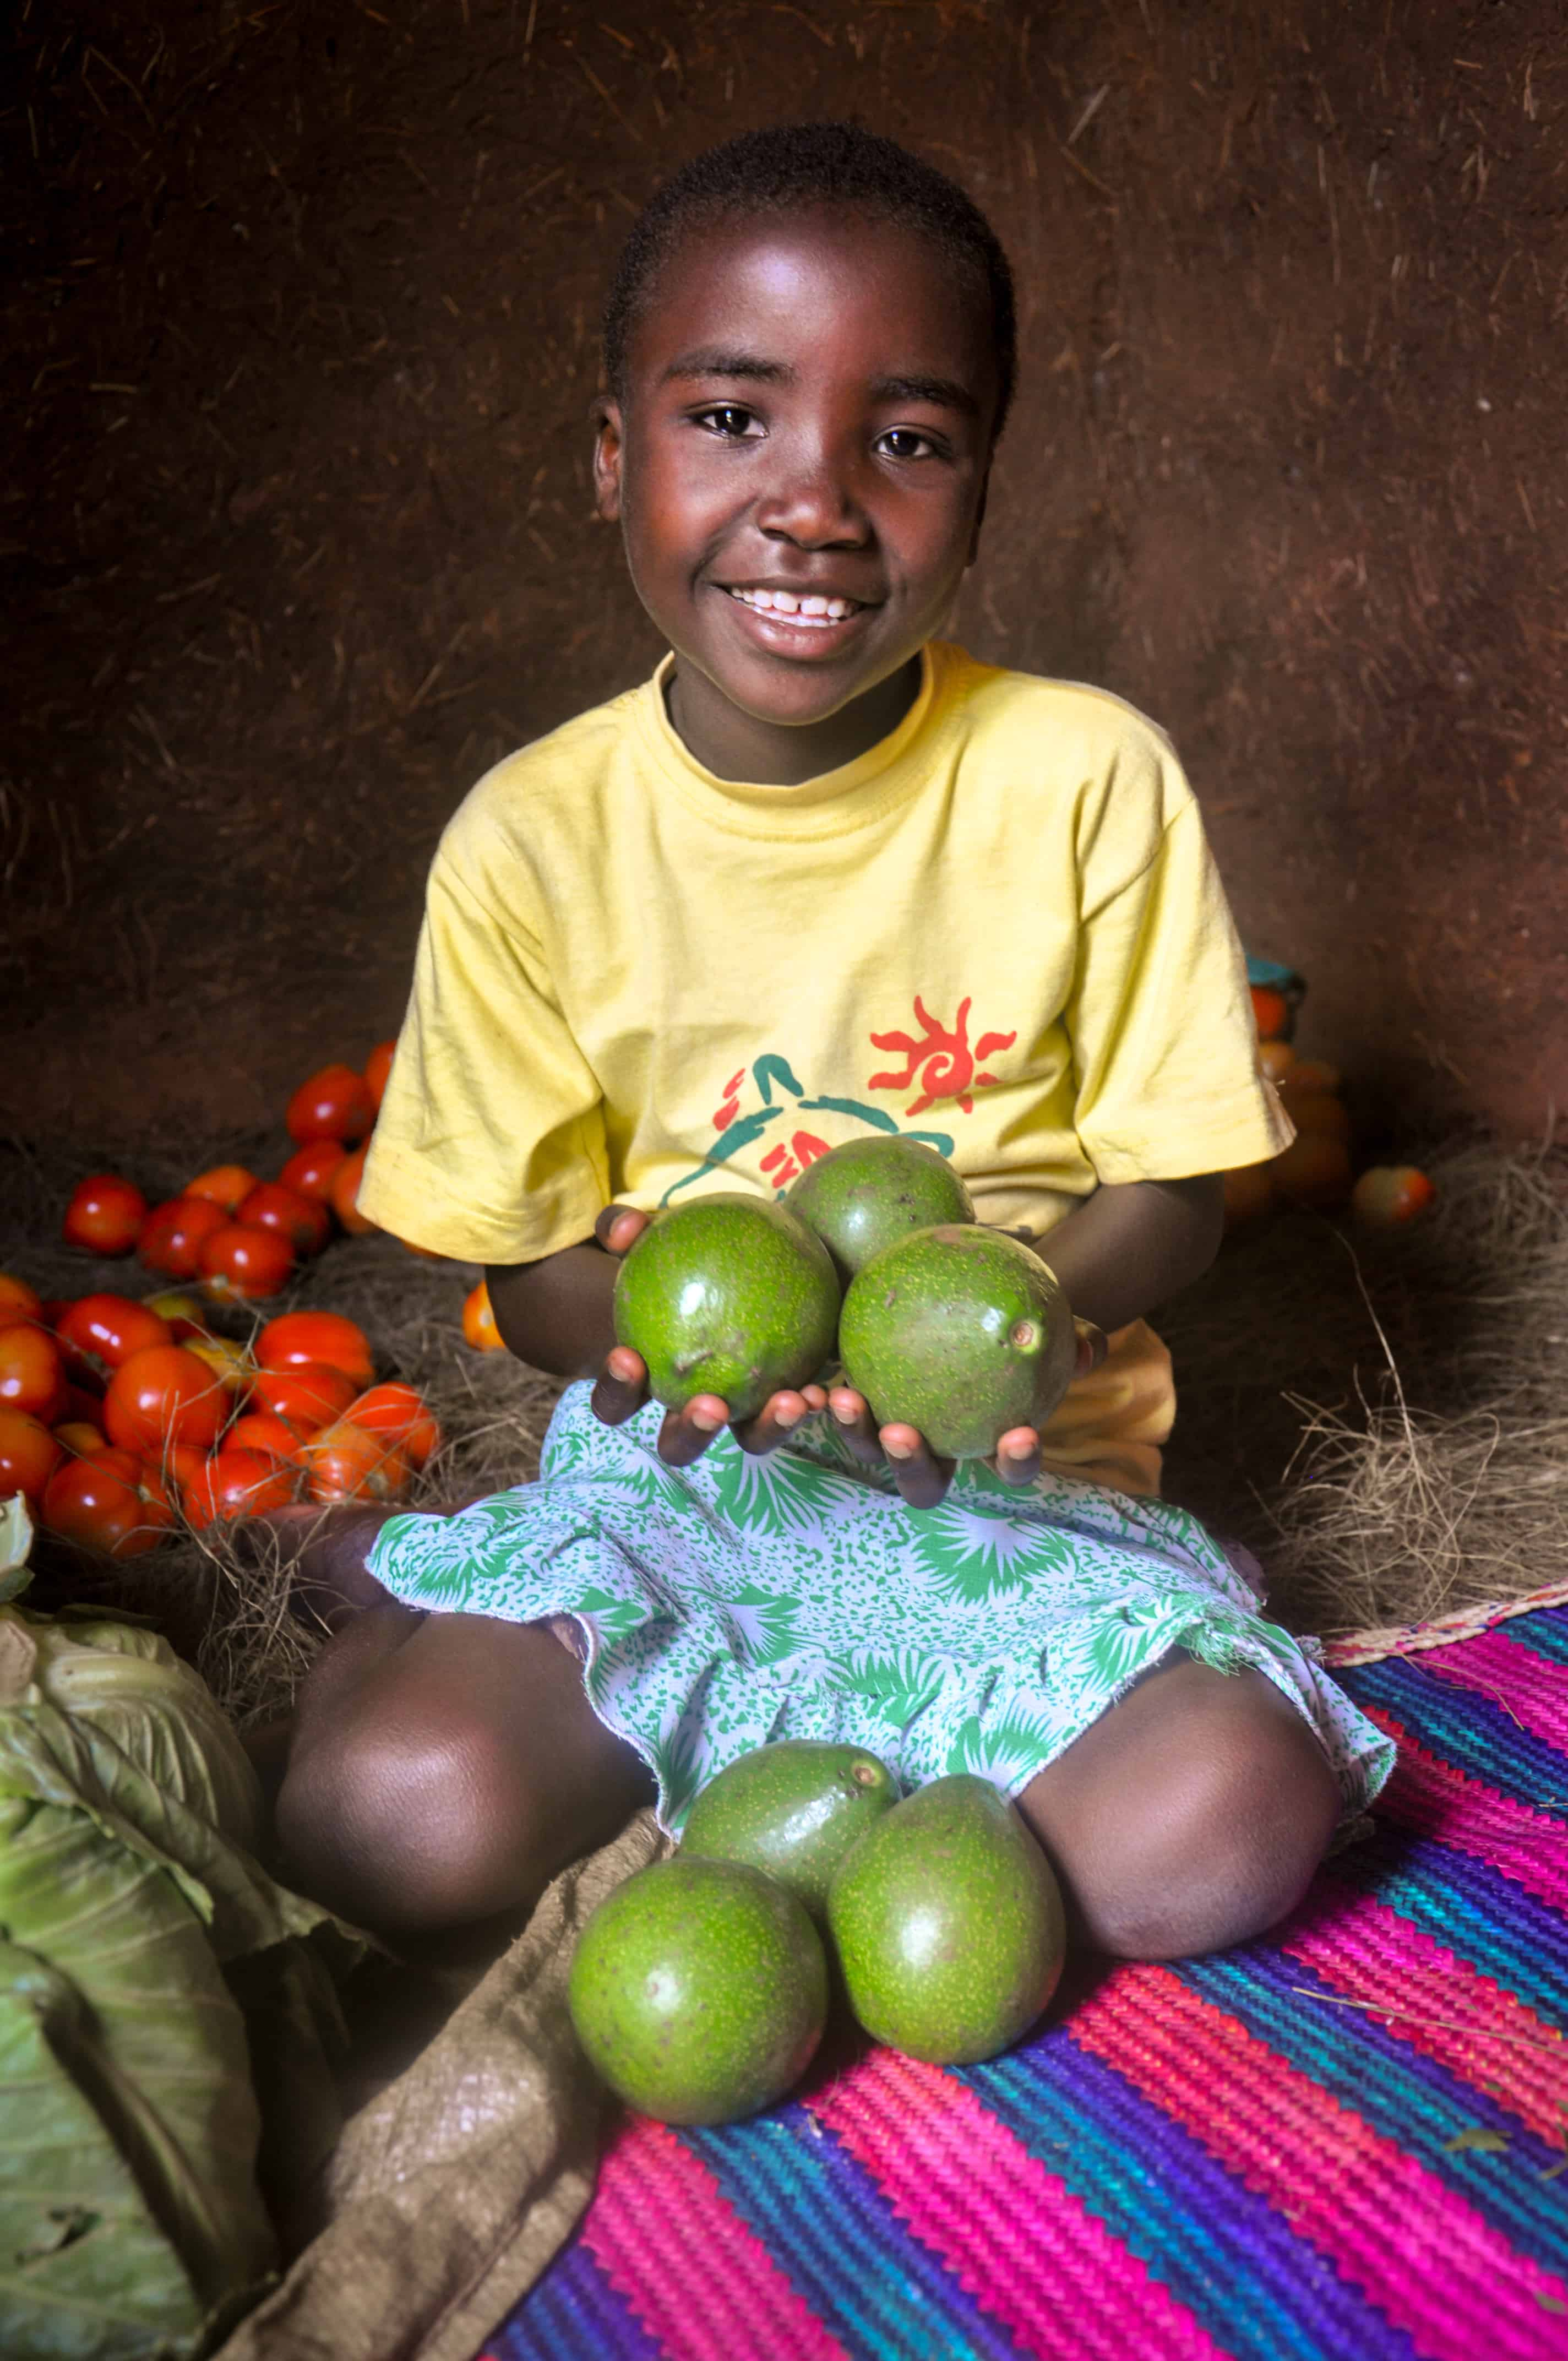 A World Vision Tanzania sponsored child Vanessa (6) happily holding avocadoes which shows food security at her home in Kitoko village located in north western Tanzania